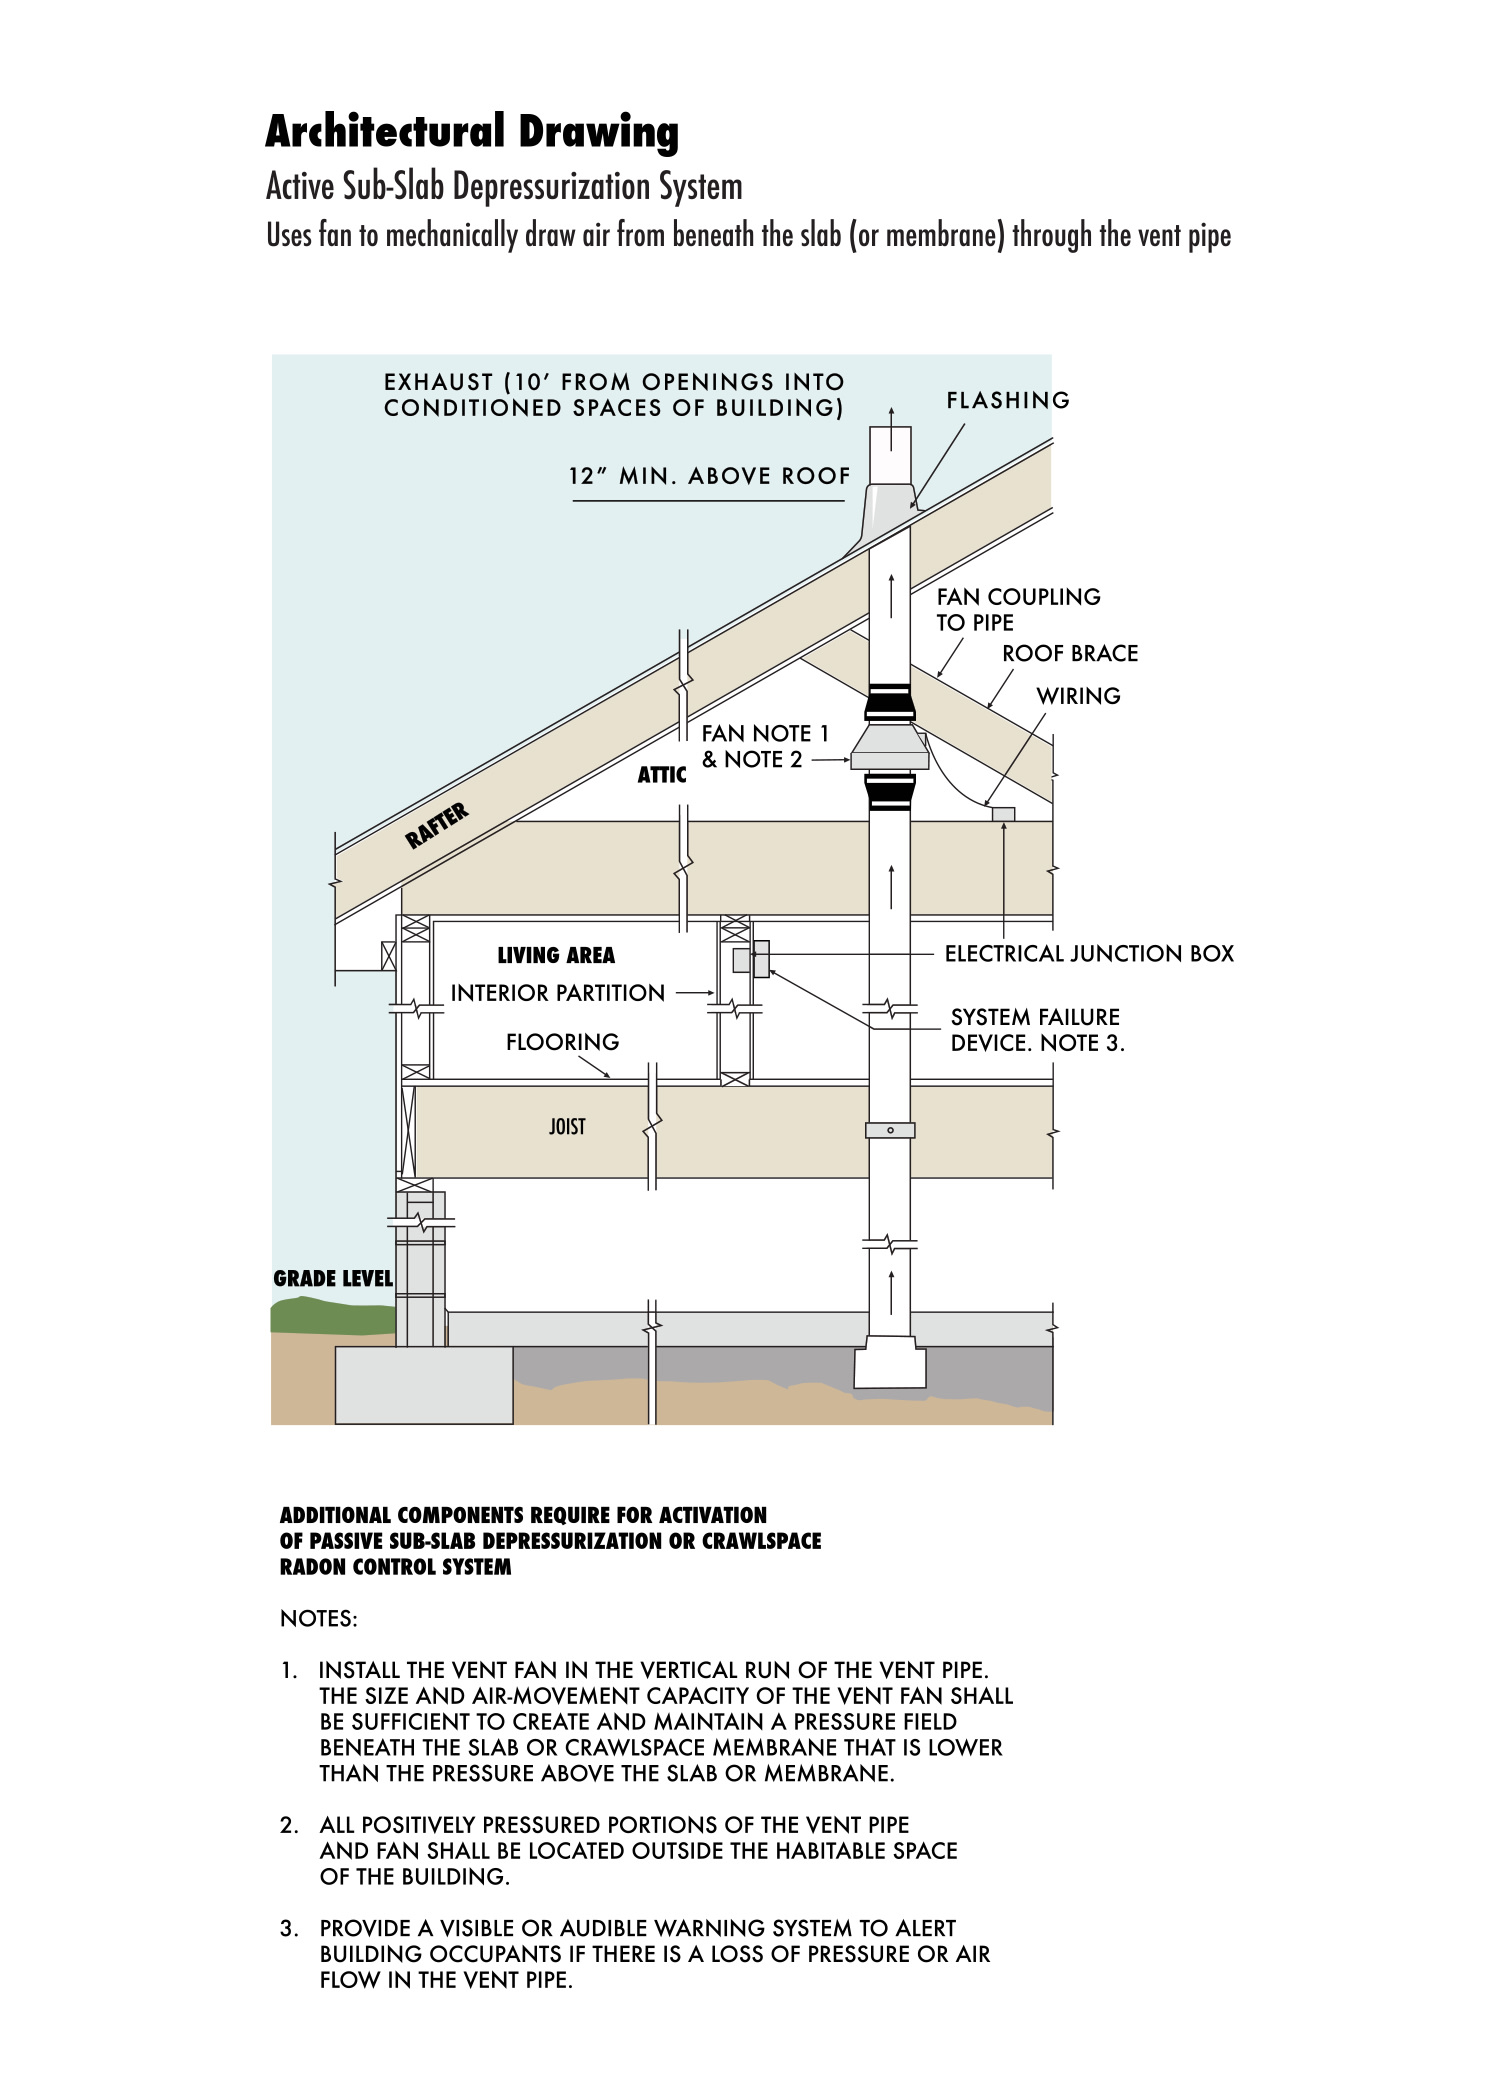 Architectural Drawing of Active Radon System